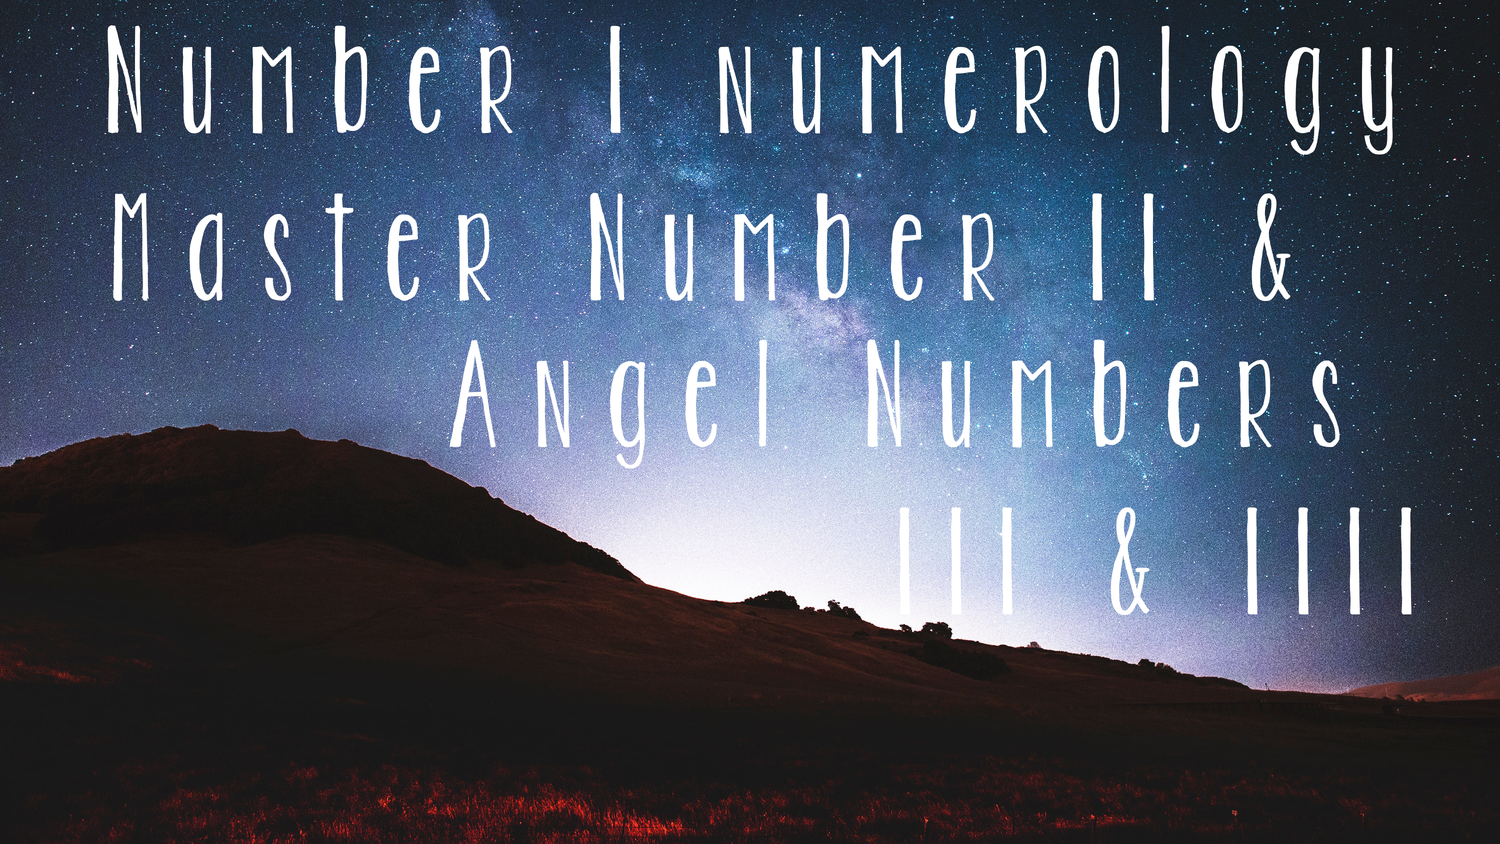 Numerology 101: Angel Number 111 & 1111 — Rose & Ritual